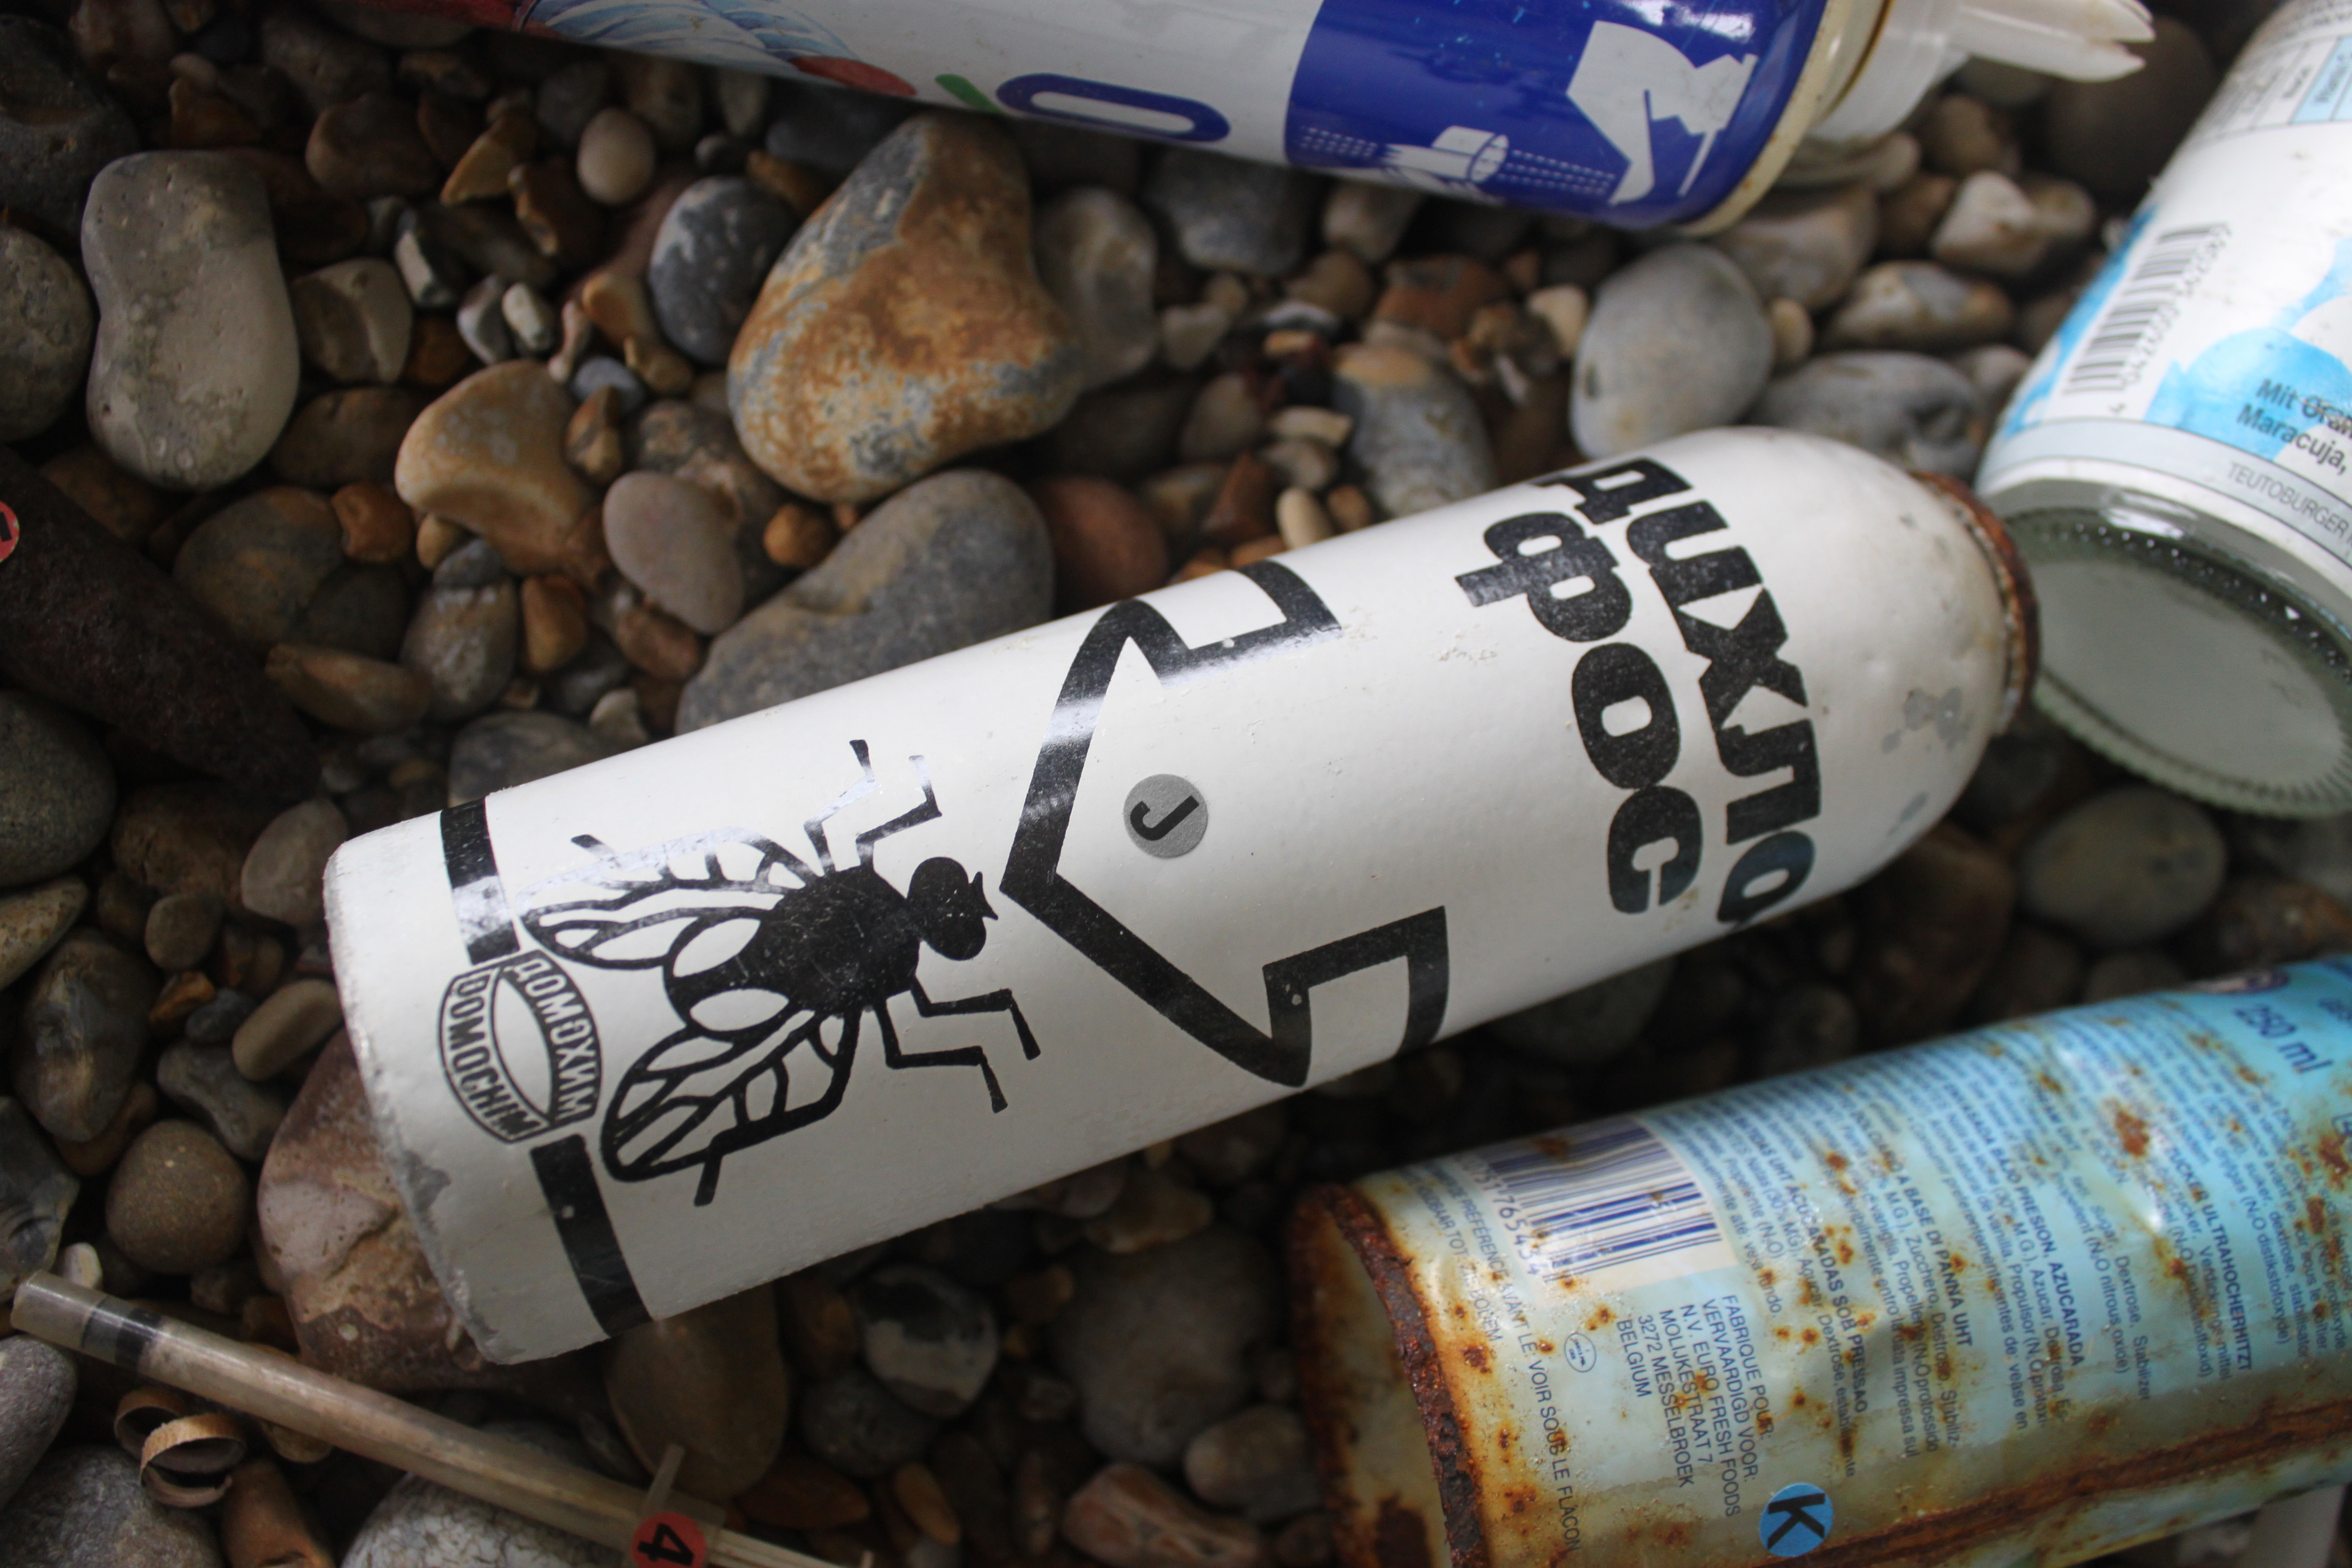 Russian bug spray was found at Orford Ness (National Trust/Glen Pearce/PA)